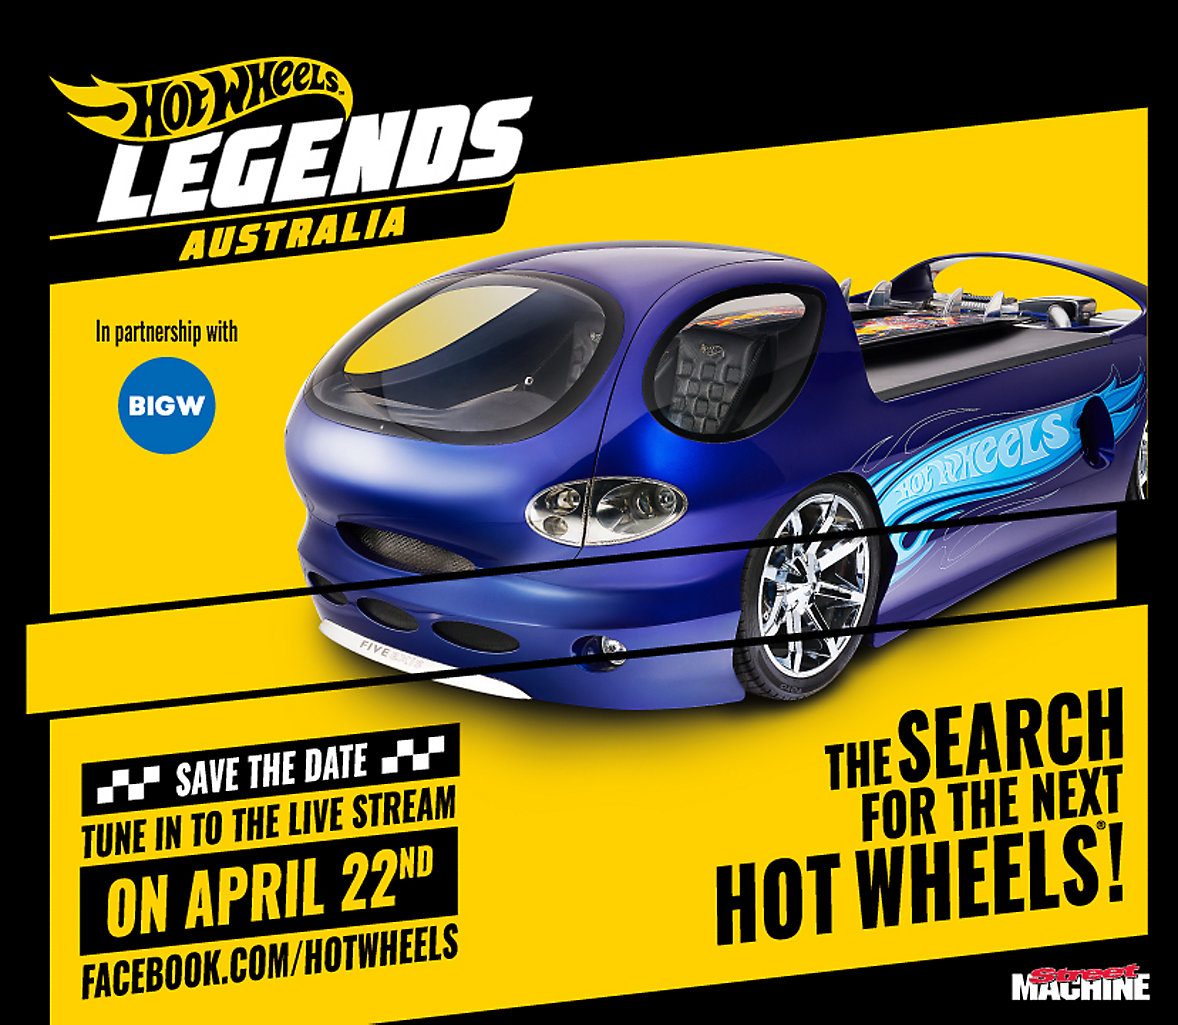 Hot Wheels Legends Save the Date